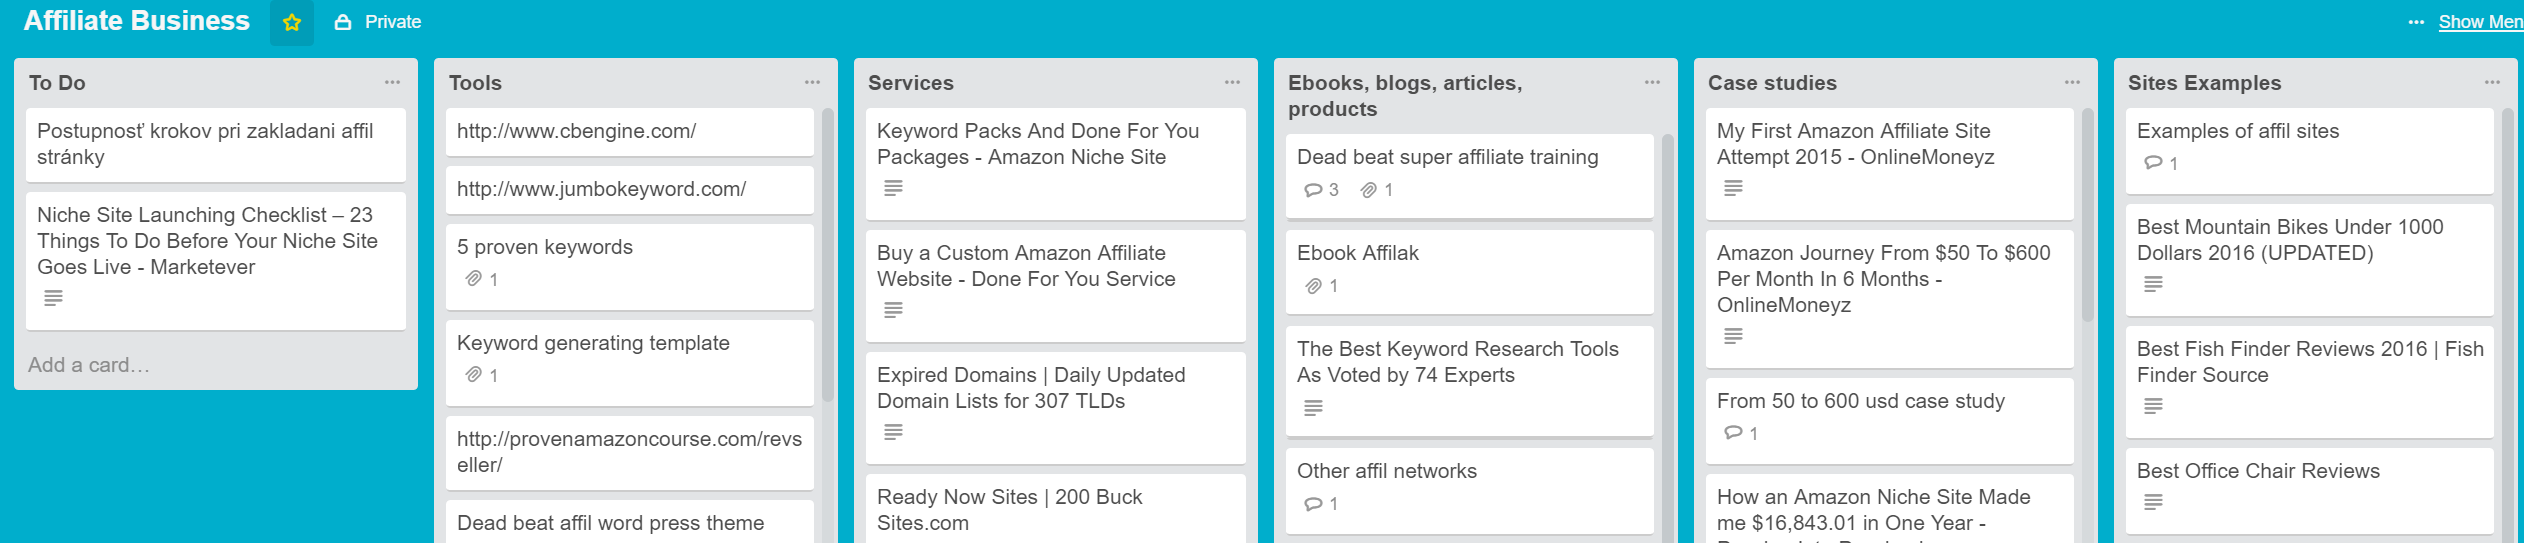 trello amazon affil working board